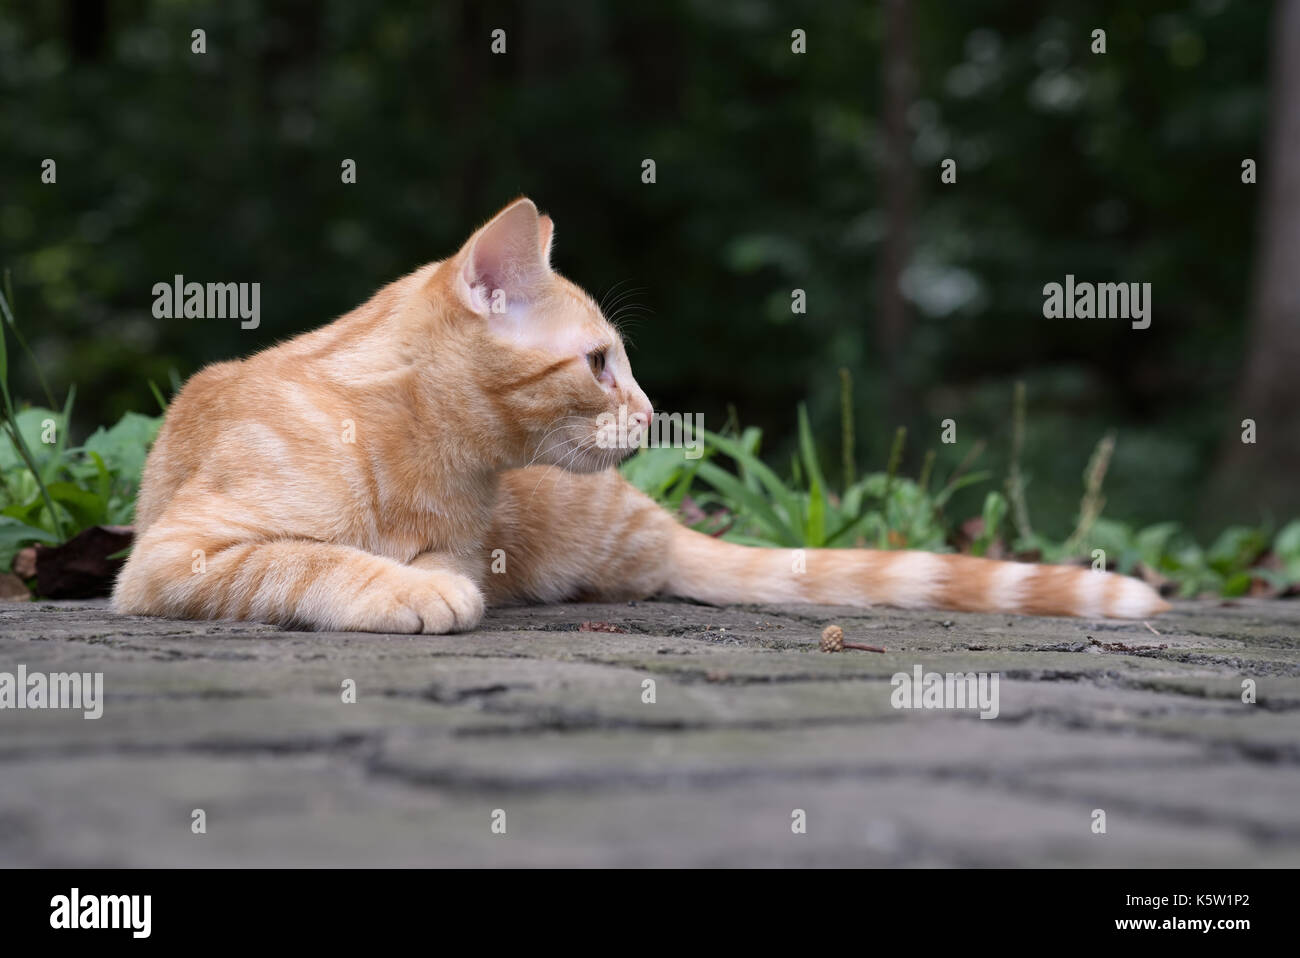 Orange kittn lying down outdoors paying attention. - Stock Image